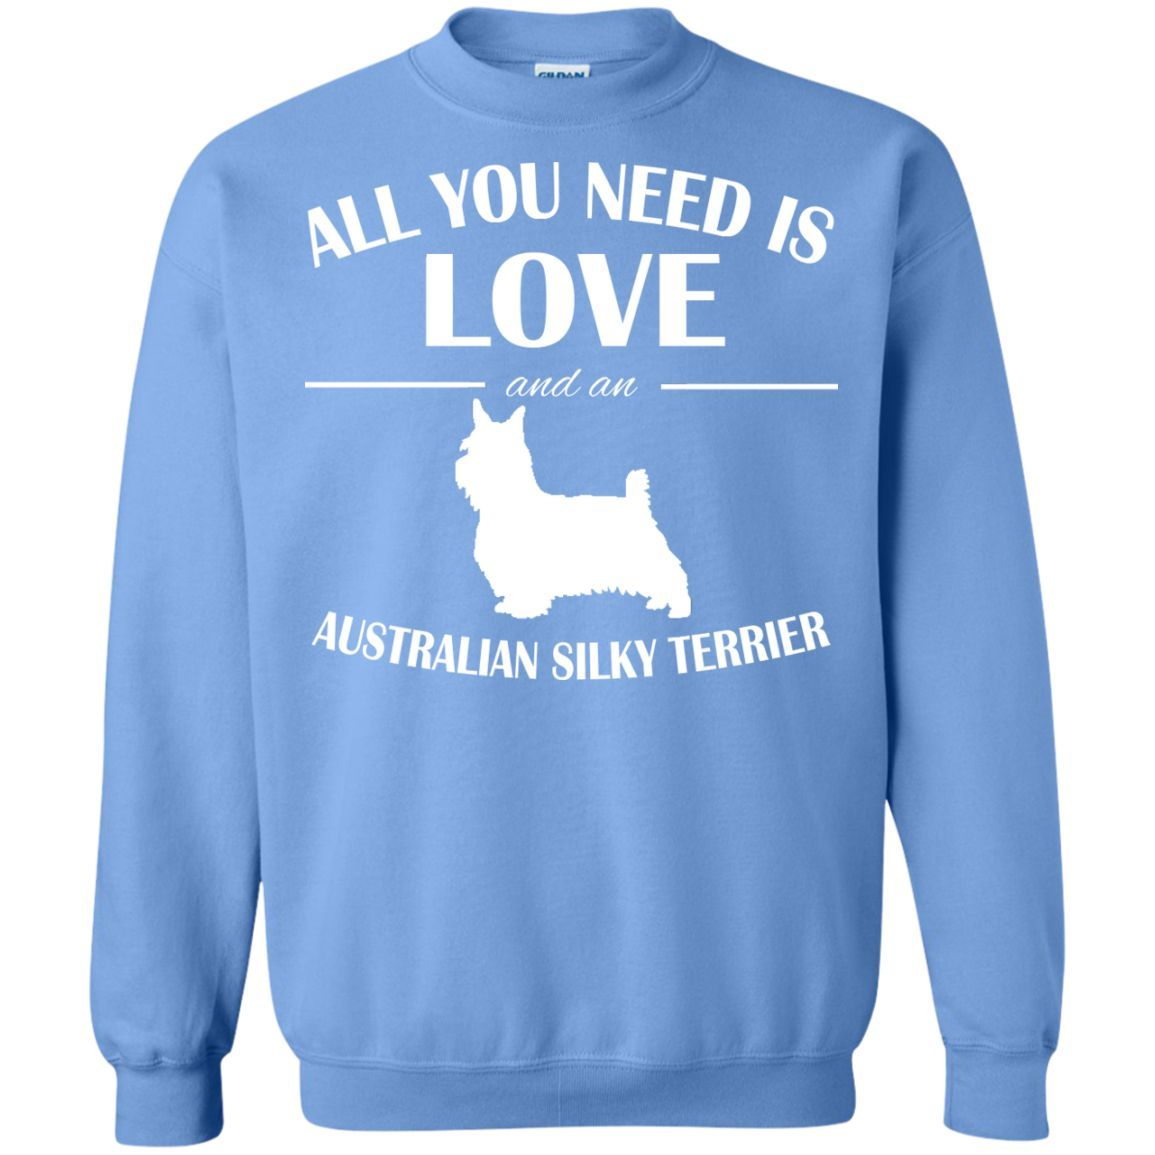 All You Need Is Love And An Australian Silky Terrier Sweatshirts